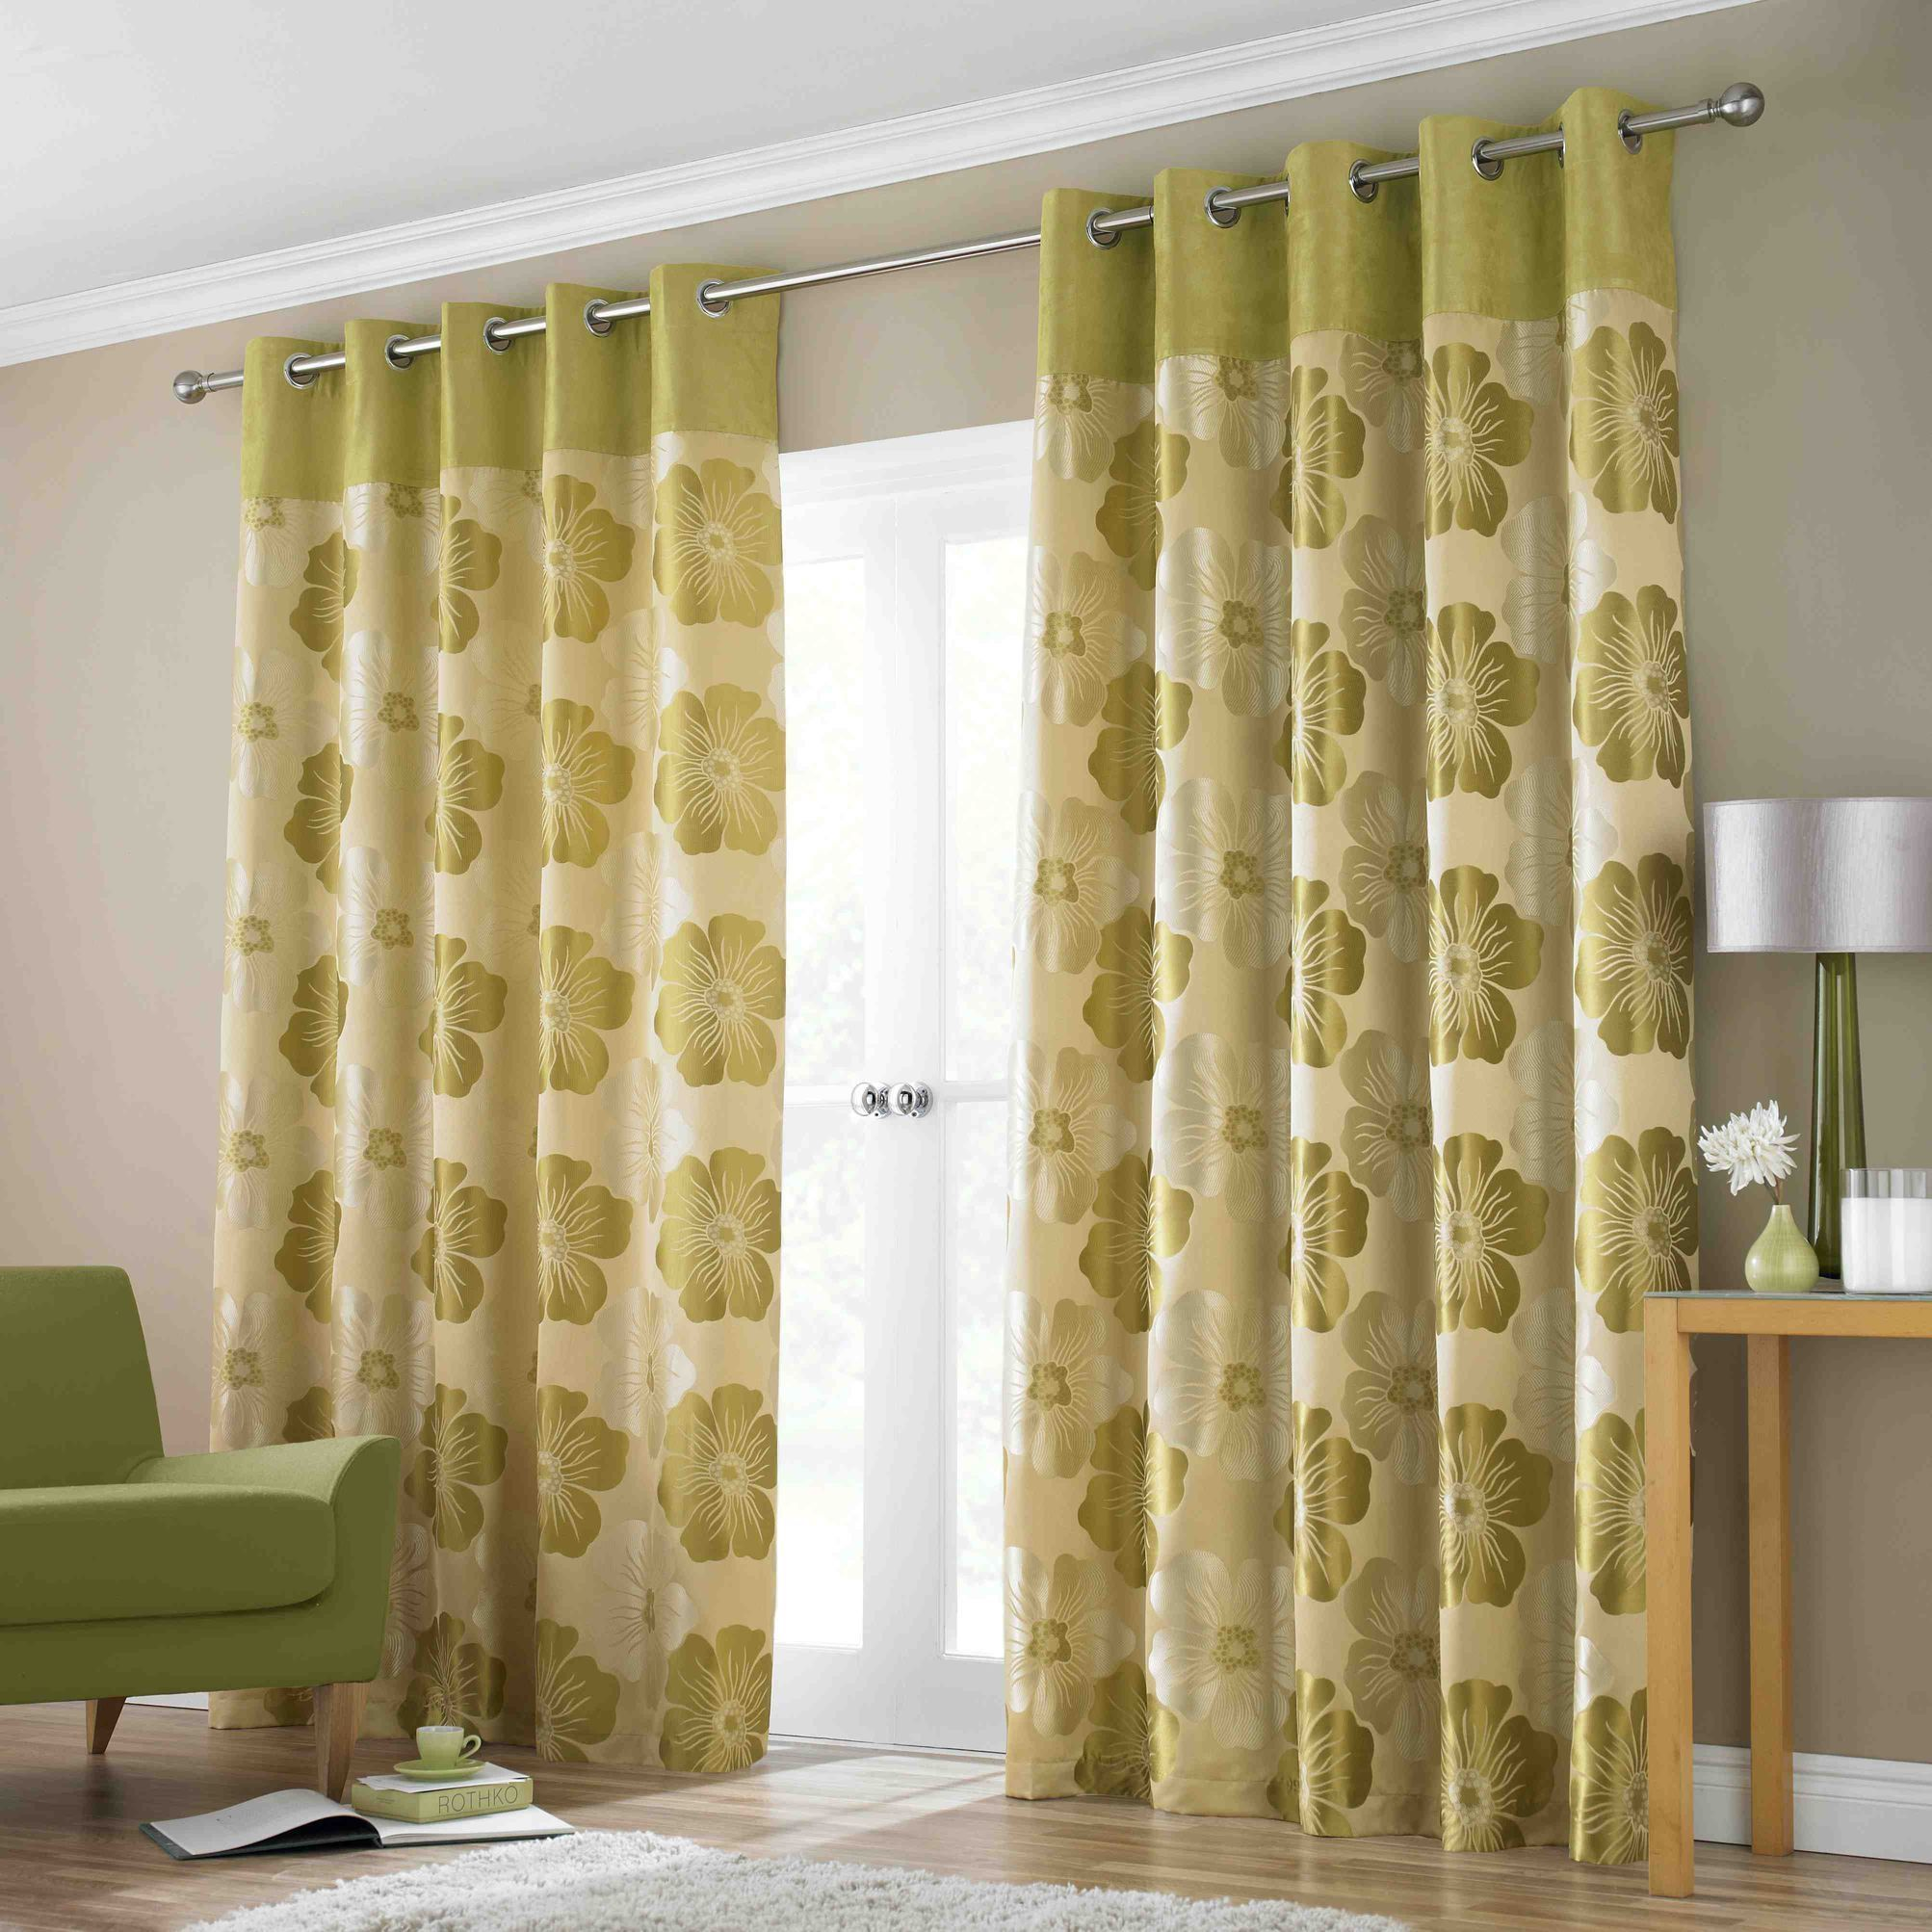 Latest Curtains Designs For Living Room Inspiration Httpzynnaincurtaindesigncompanygivestopwindowtreatment Decorating Inspiration